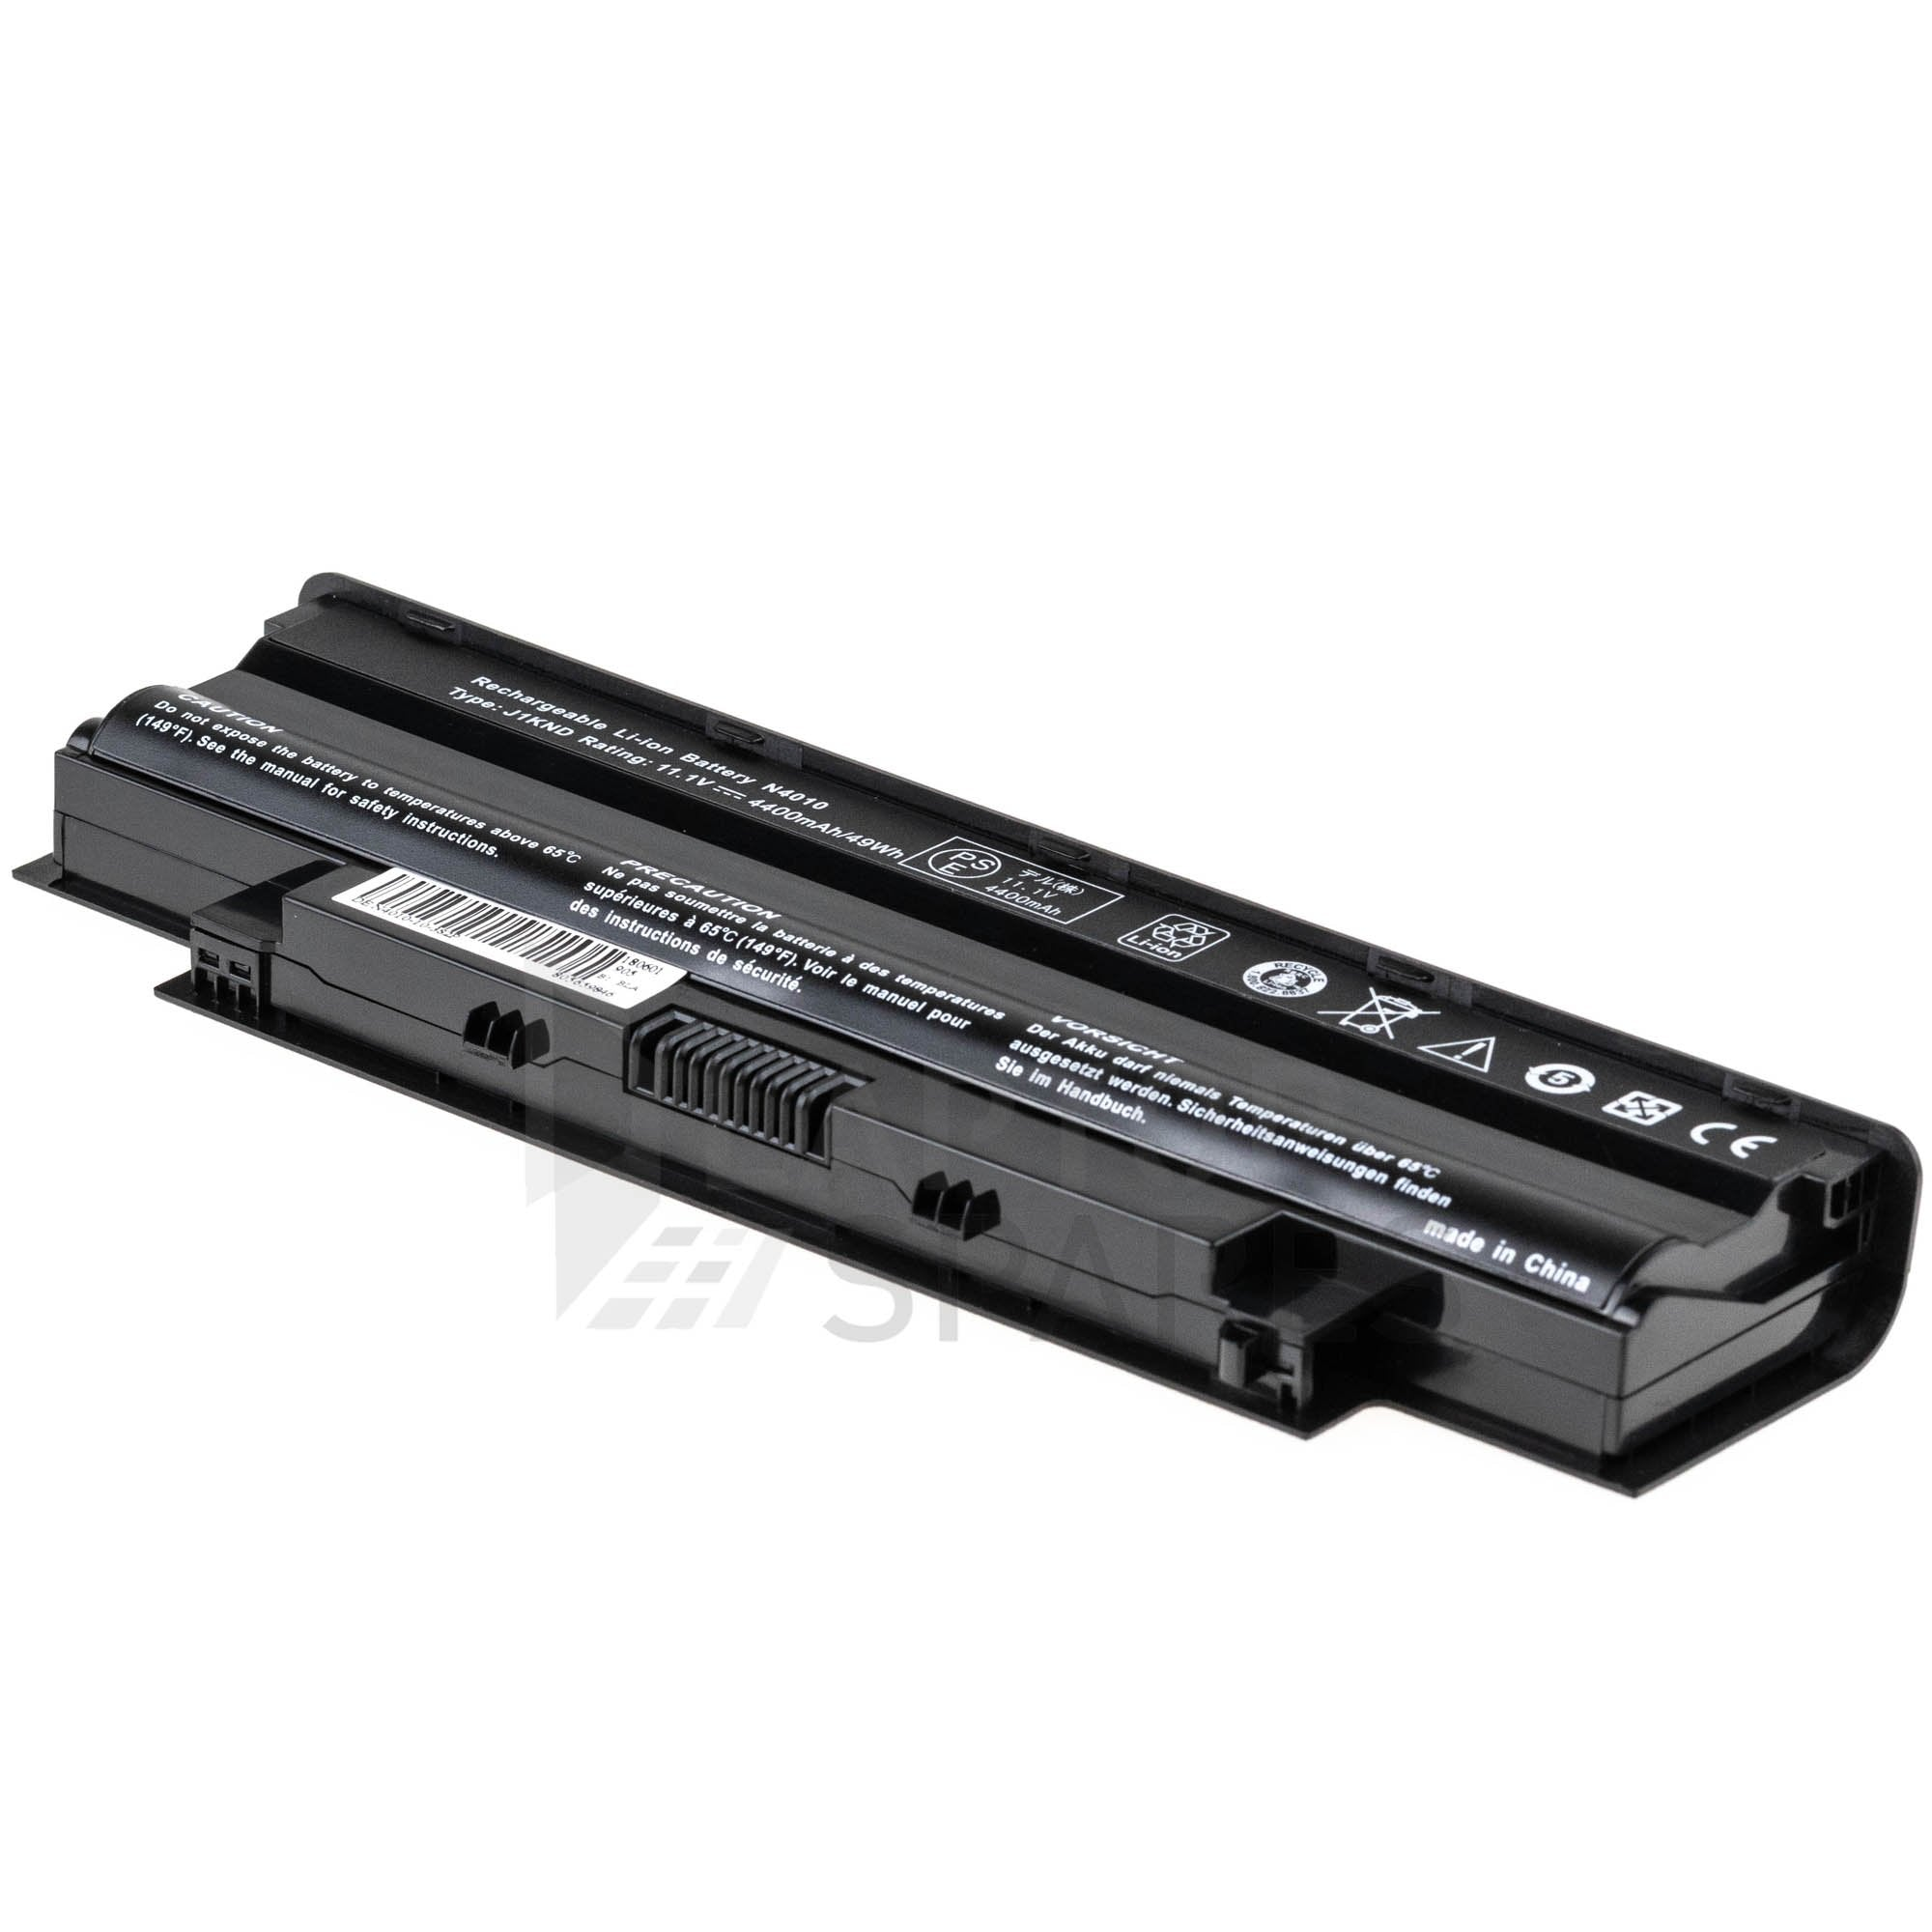 Dell Inspiron N3010D 4400mAh 6 Cell Battery